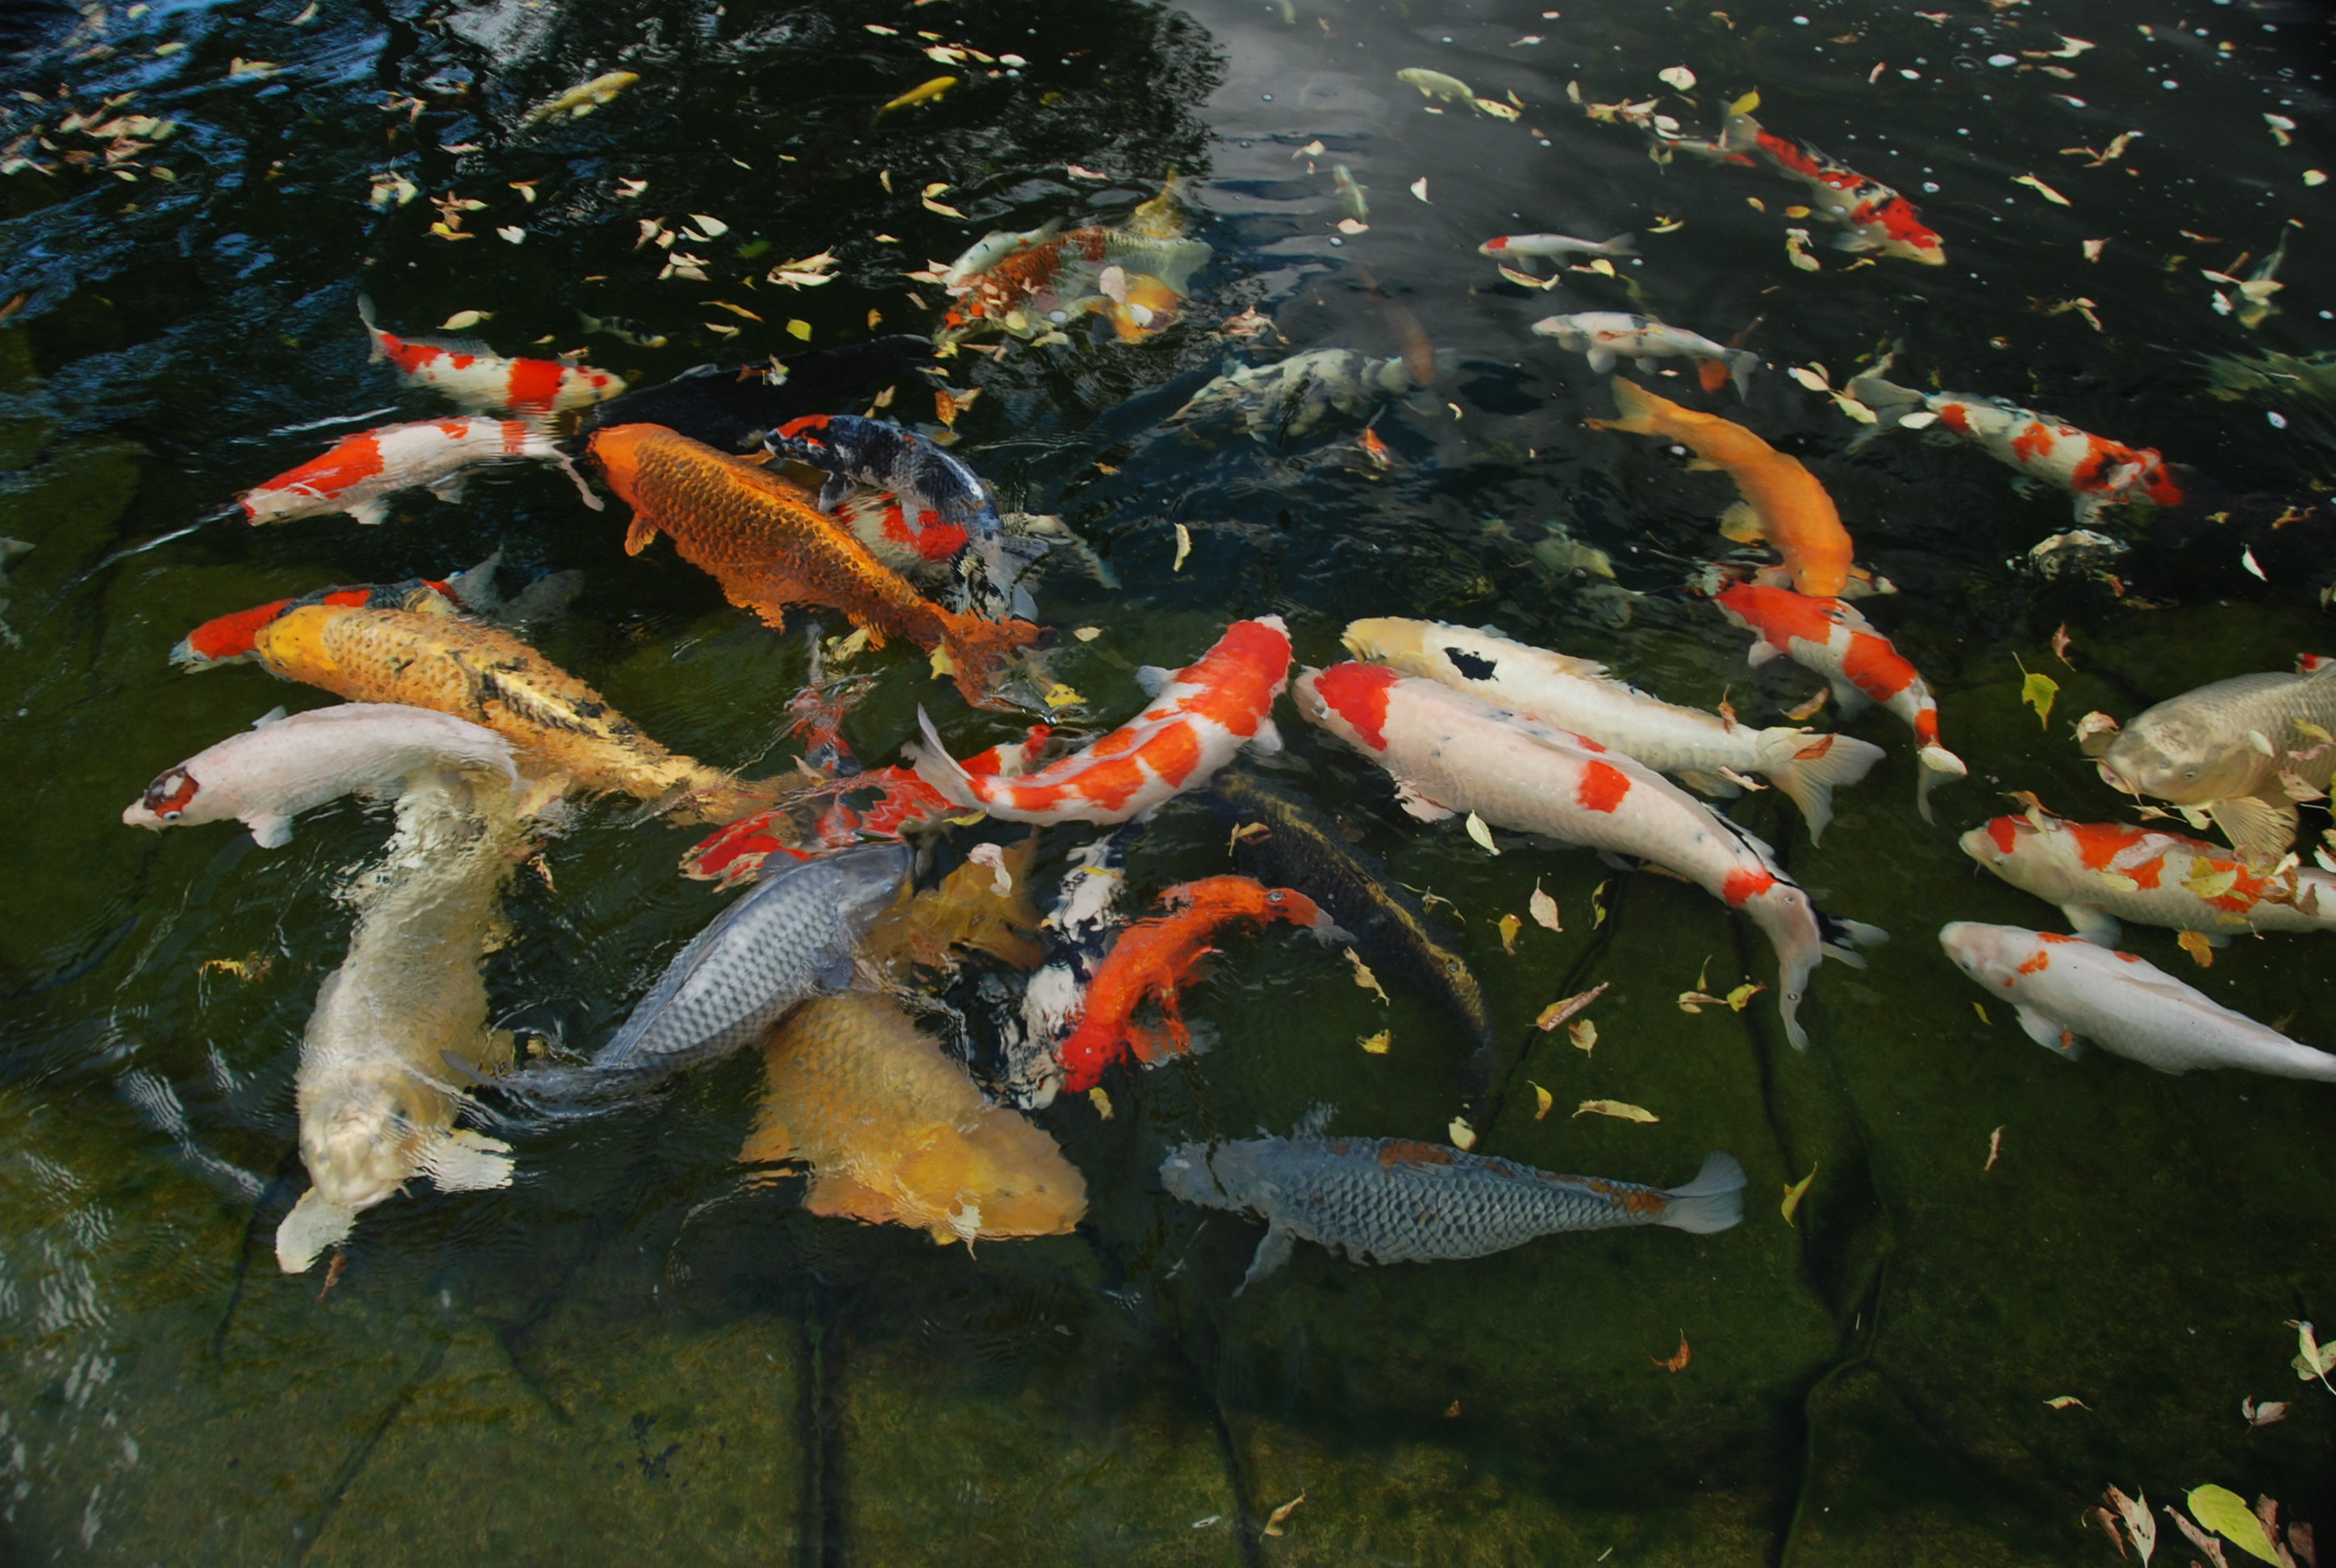 Koi Acres Imported Japanese Koi Online Shopping For Koi Food Filtration Equipment Pond